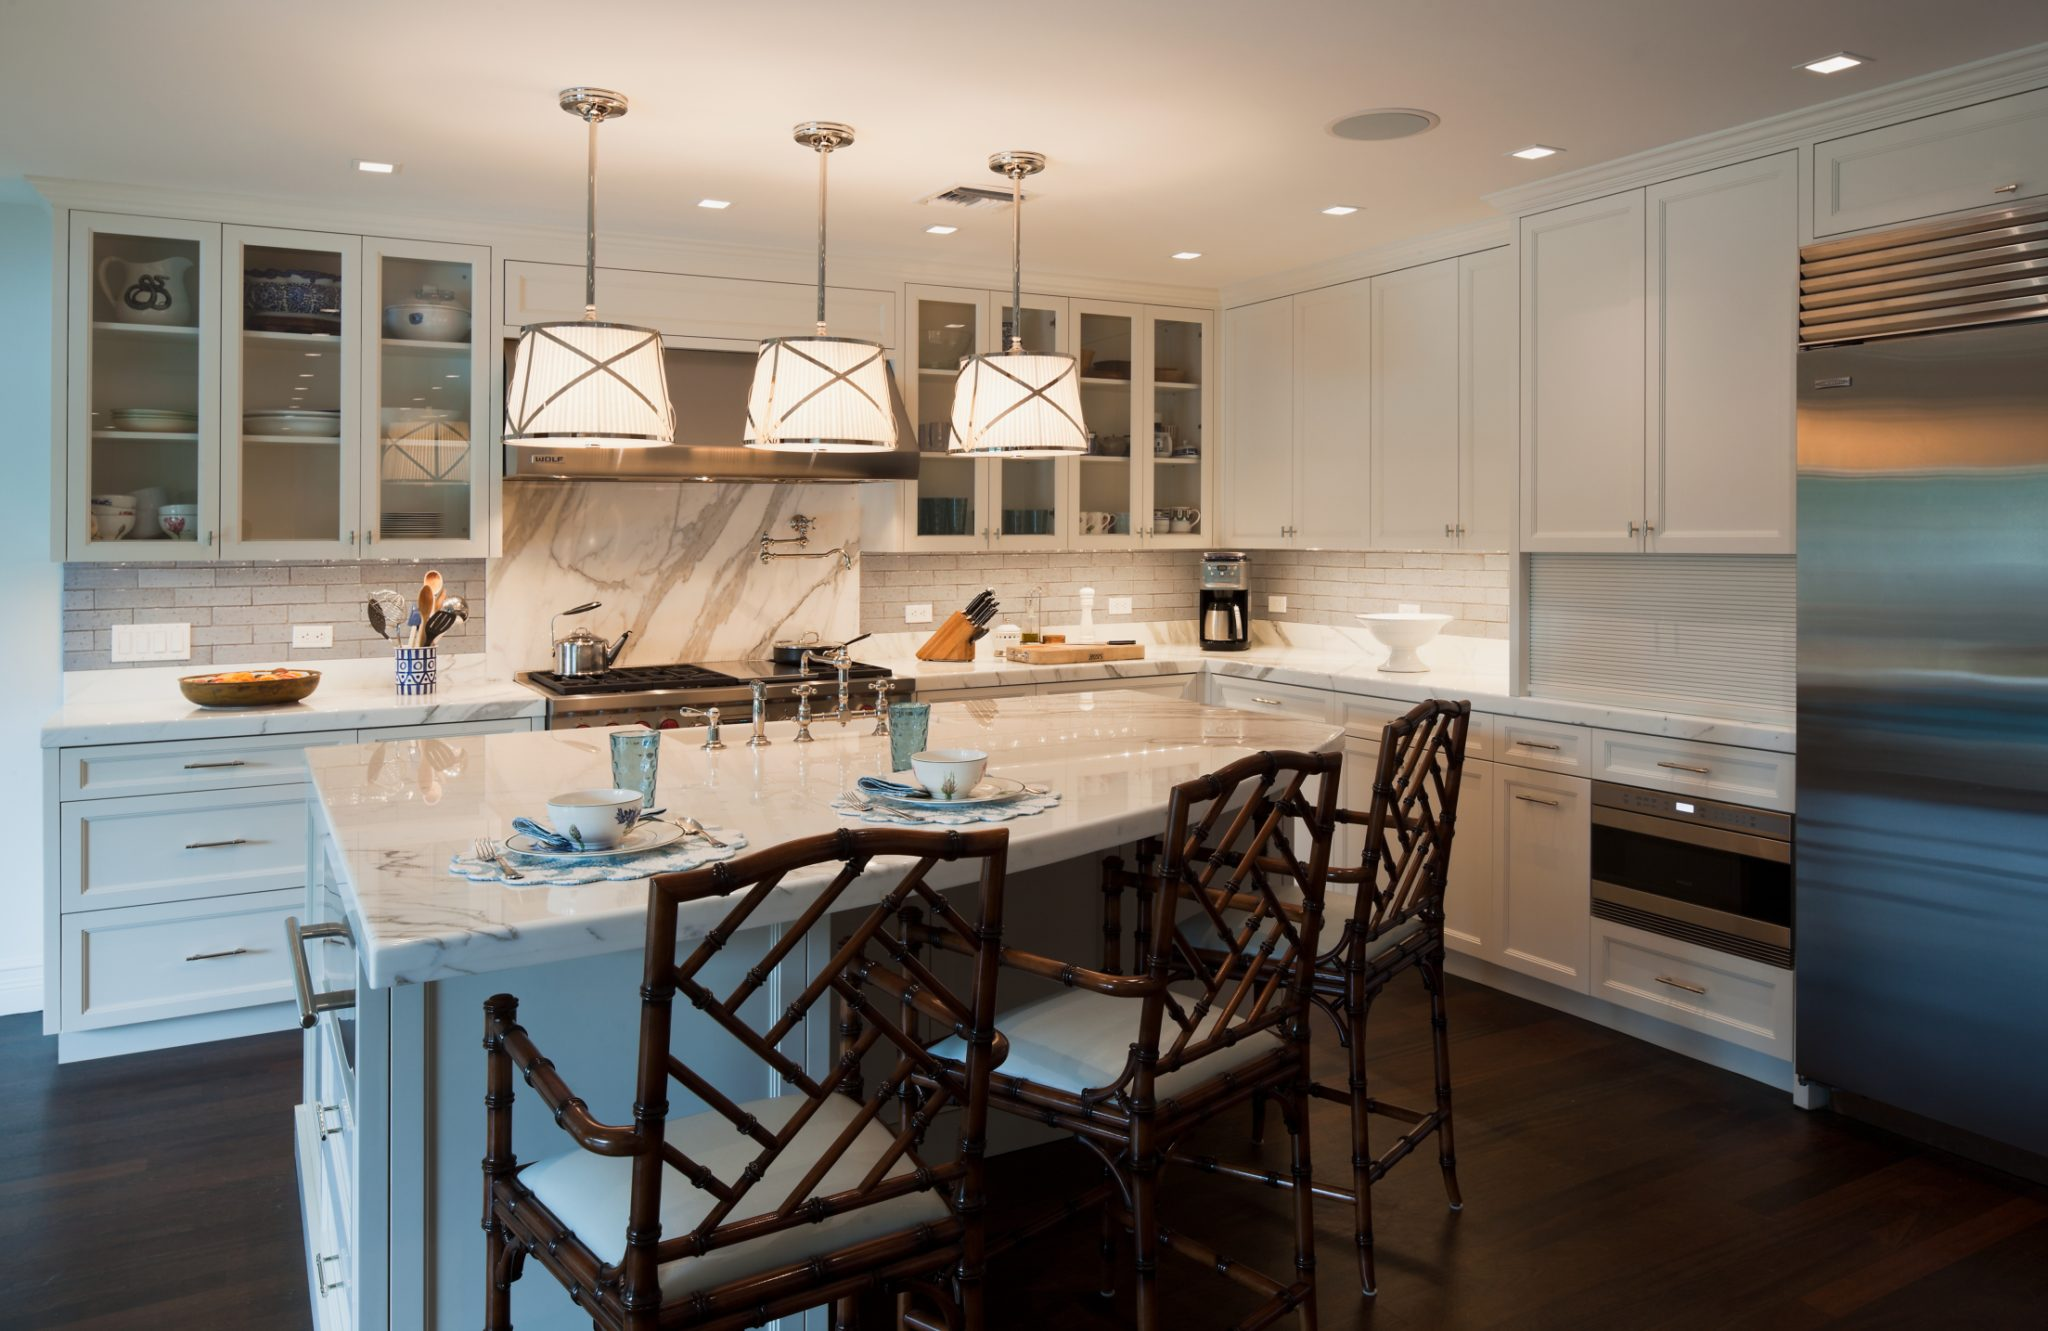 30 Kitchens with Large Center Islands - Chairish Blog